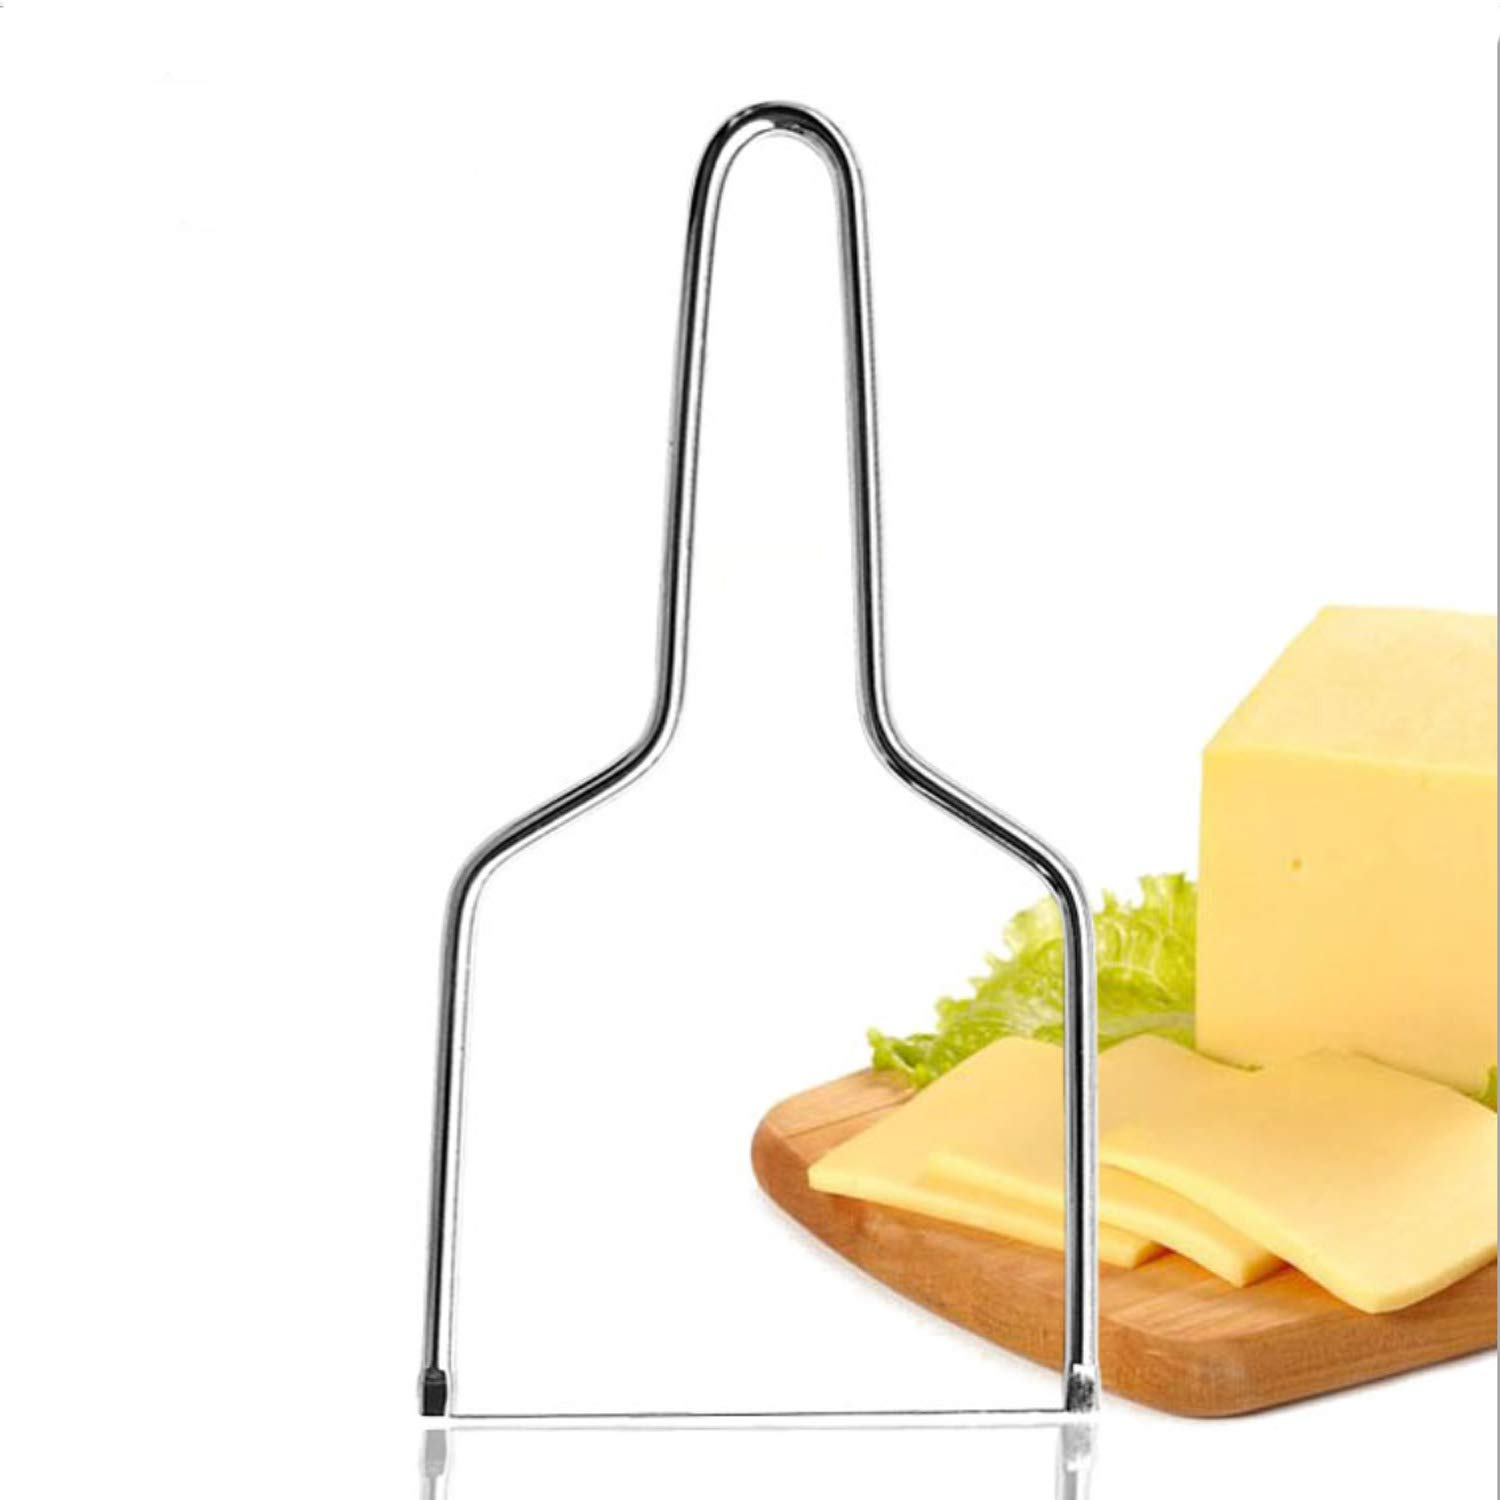 Cheese Slicer, Stainless Steel Cheese Knives Slicers with Wire - Handheld Butter Cutter Tools for Soft Hard Block Cheese of Kitchen Tools - Made of Medical Grade Steel by Aiugko